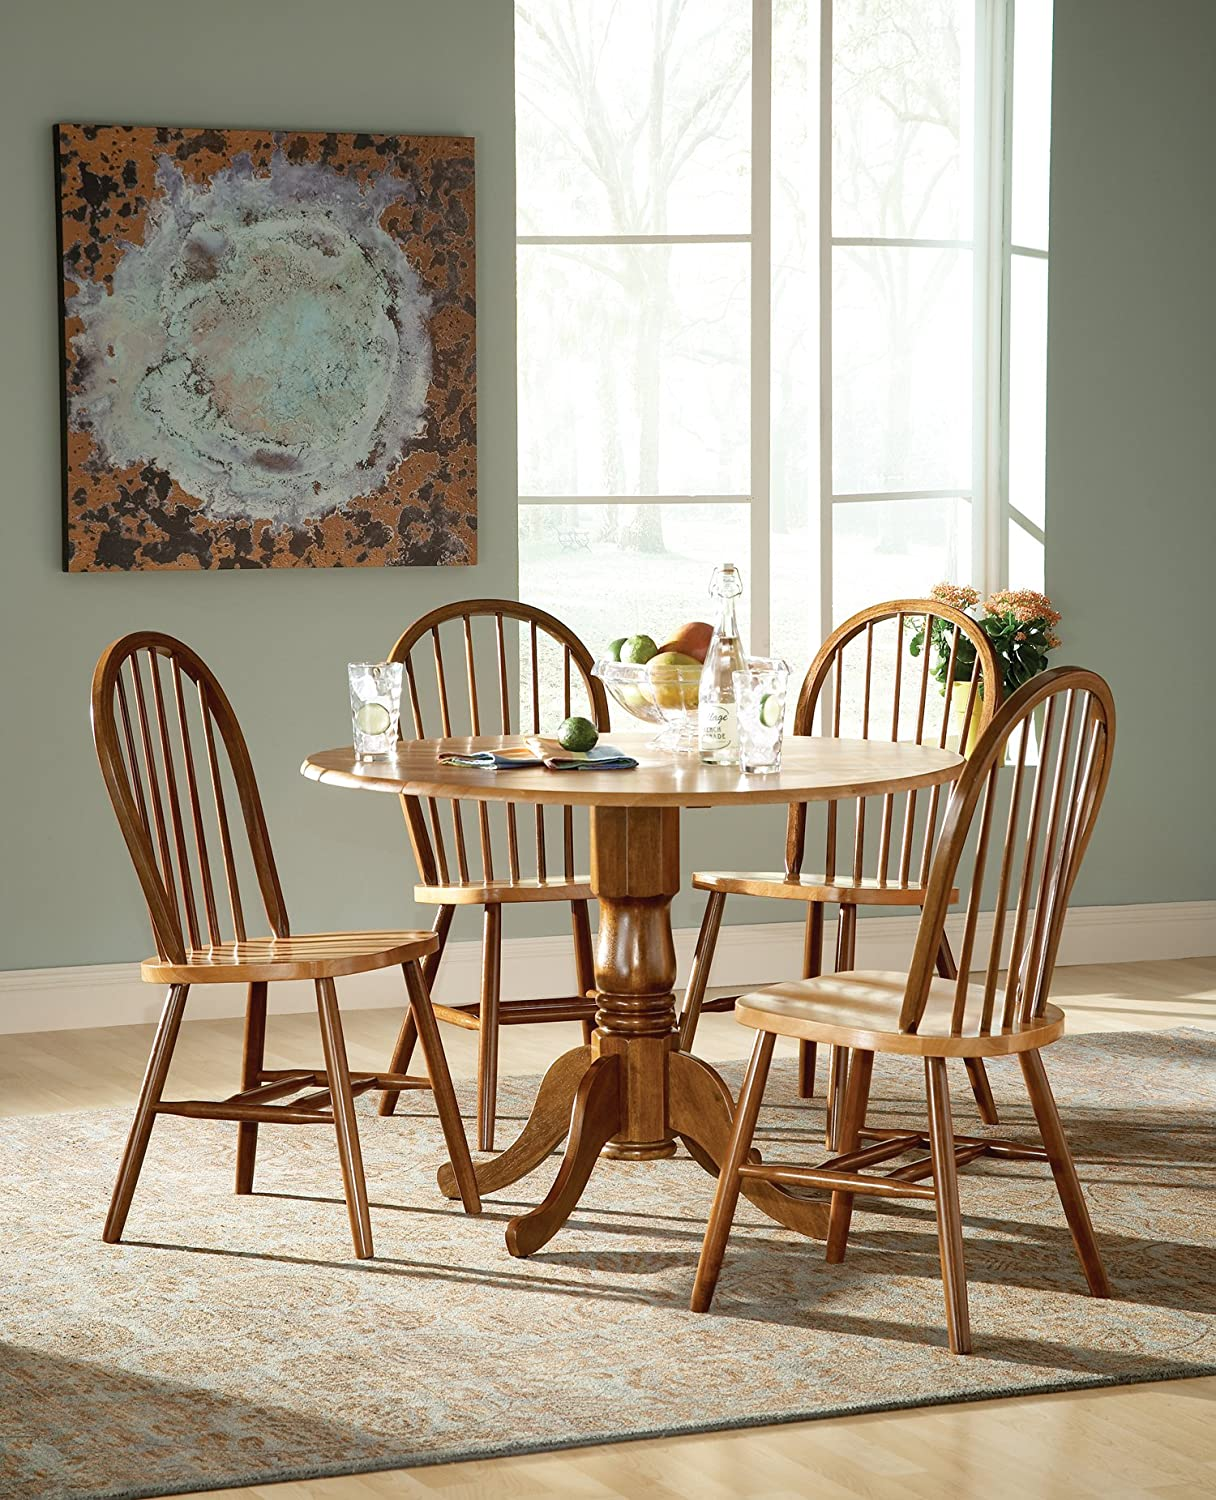 International Concepts 5 Piece 42 Dual Drop Leaf Pedestal Table with 4 Windsor Chairs, Cinnamon Espresso